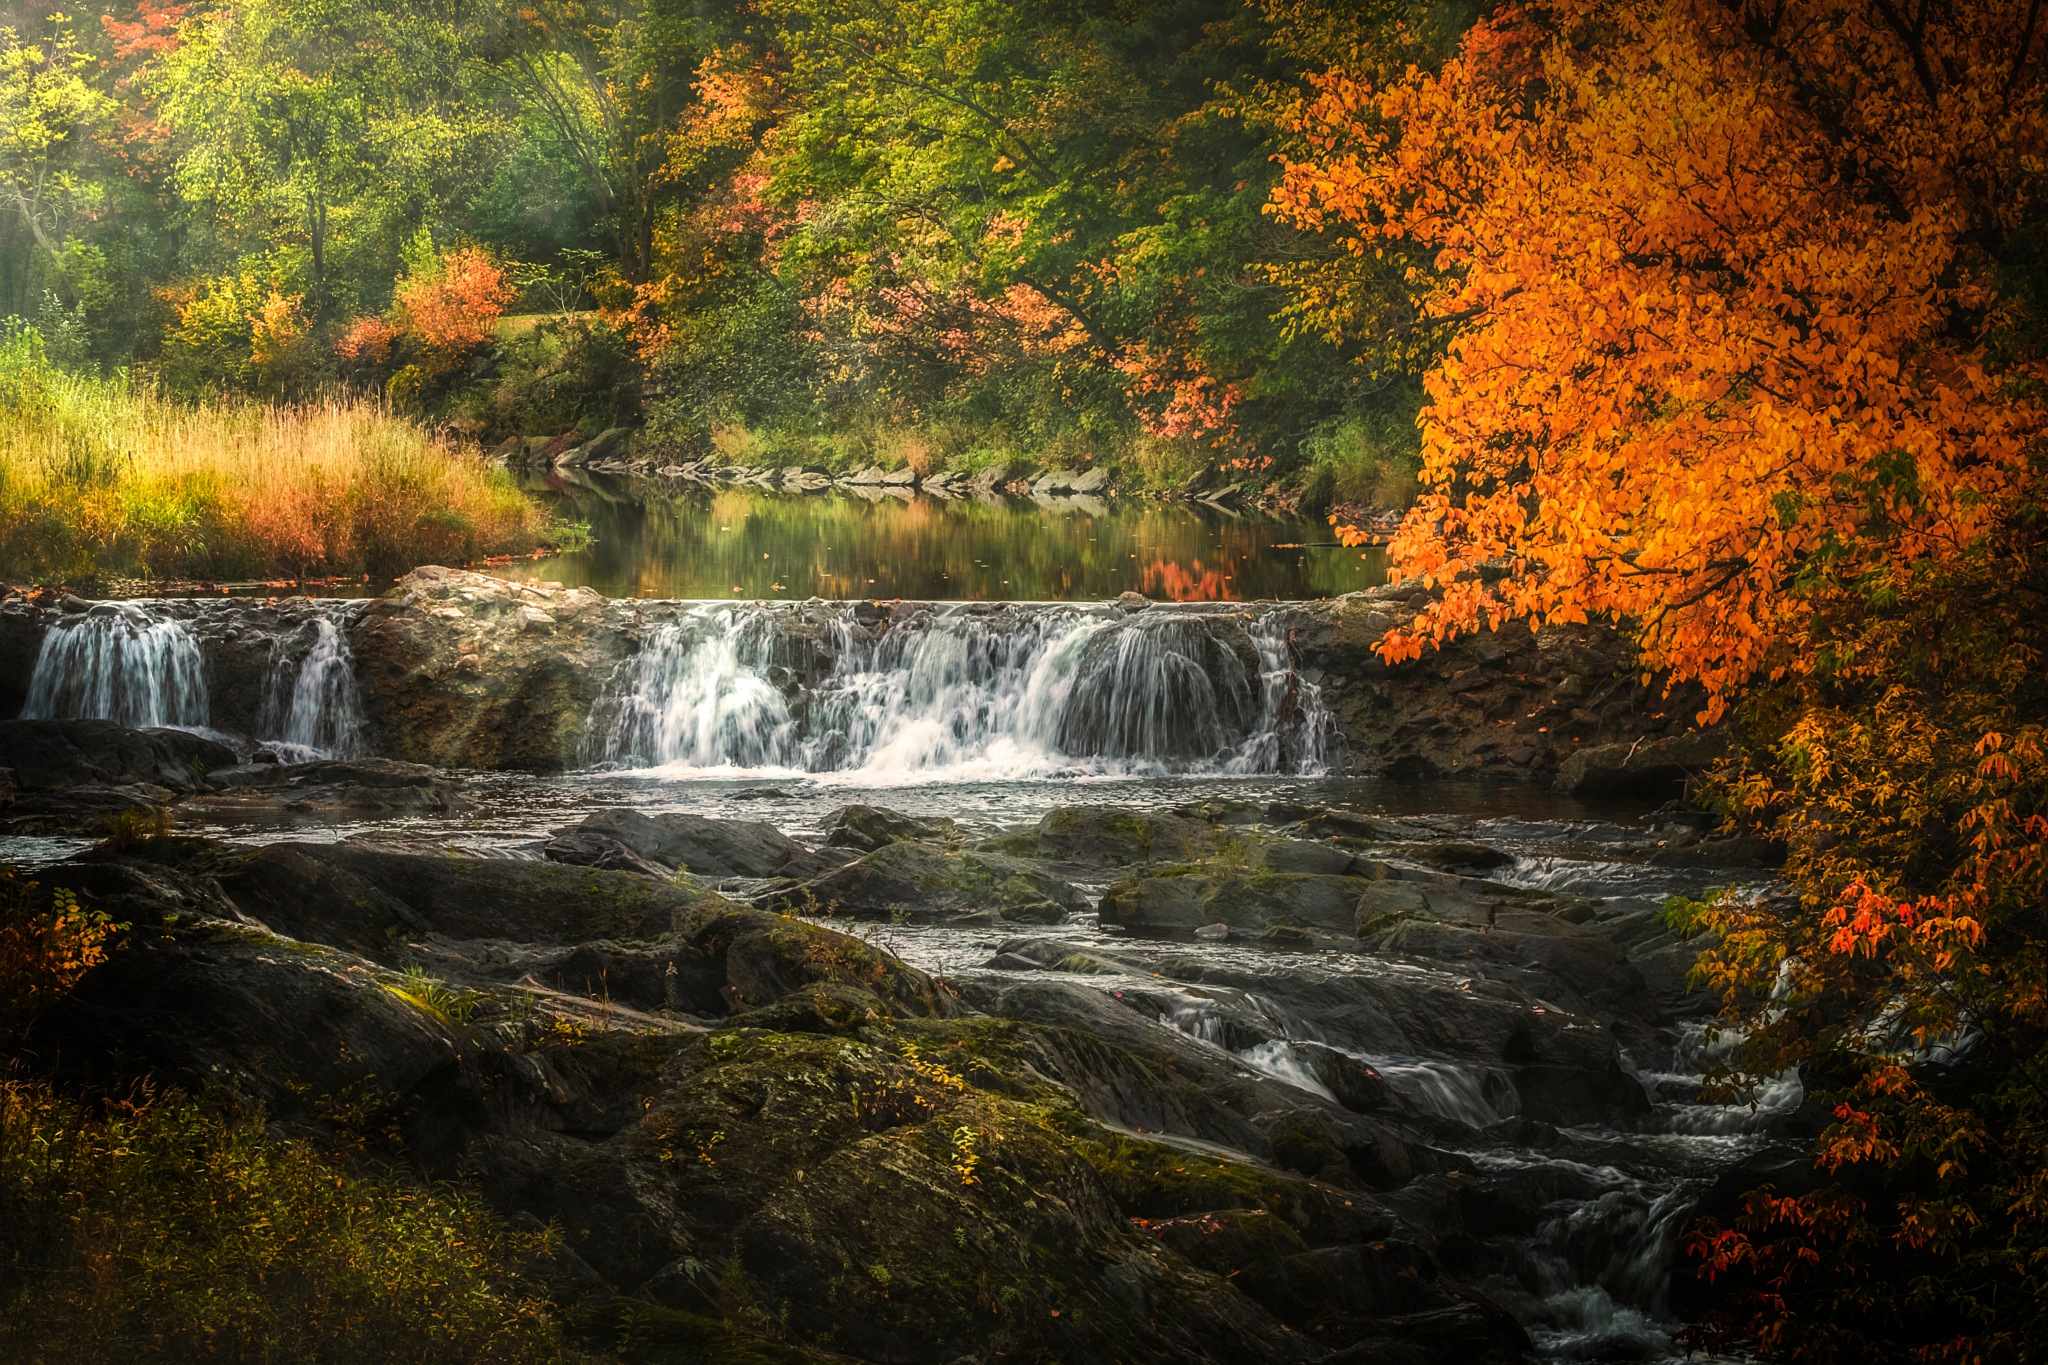 Waterfall by Stephen Clough